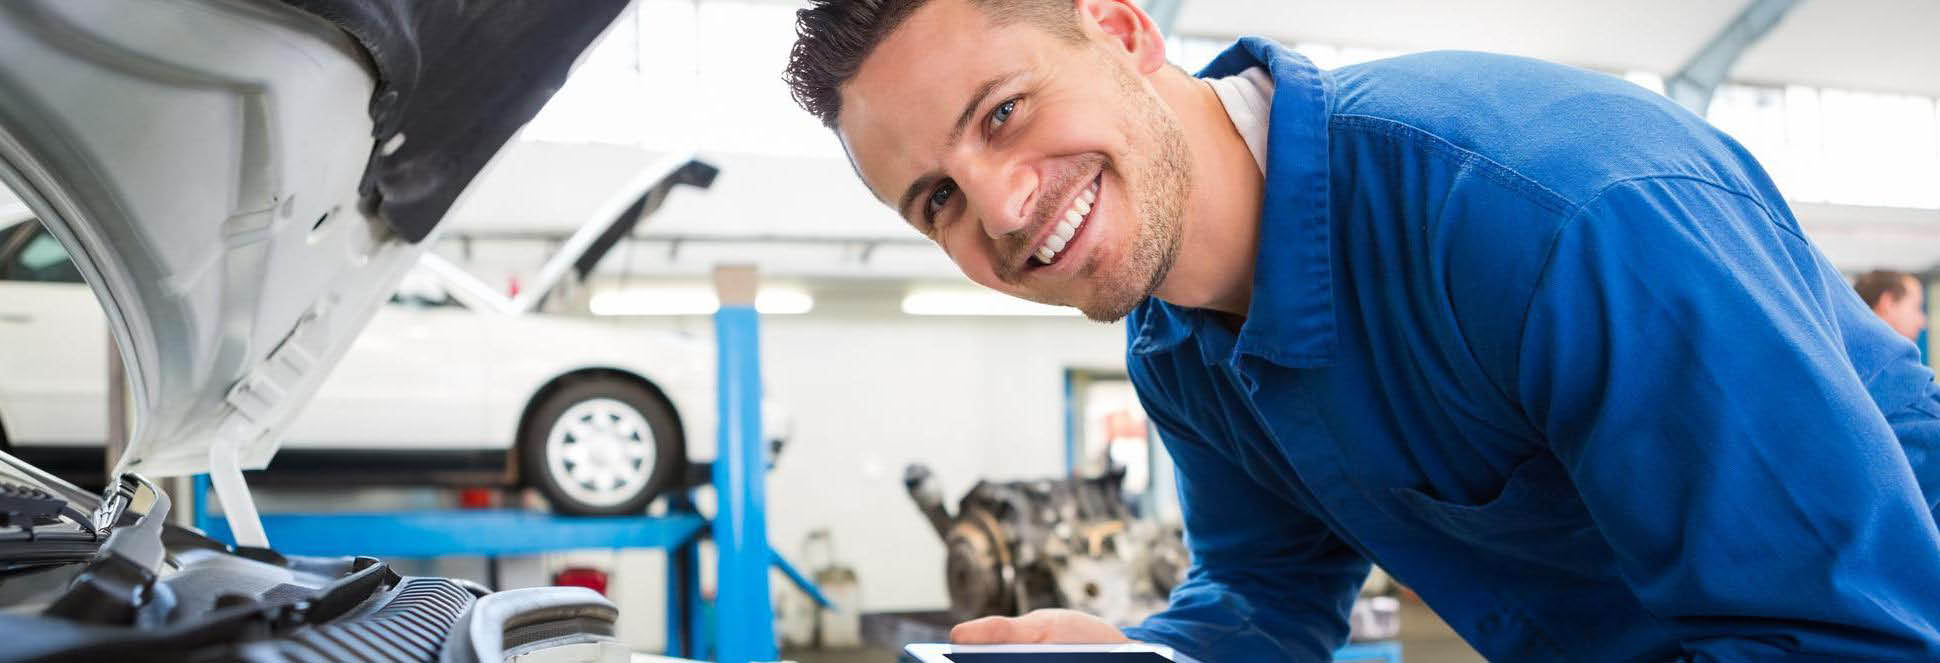 car-x auto and repair services cincinnati ohio and northern kentucky smiling employee